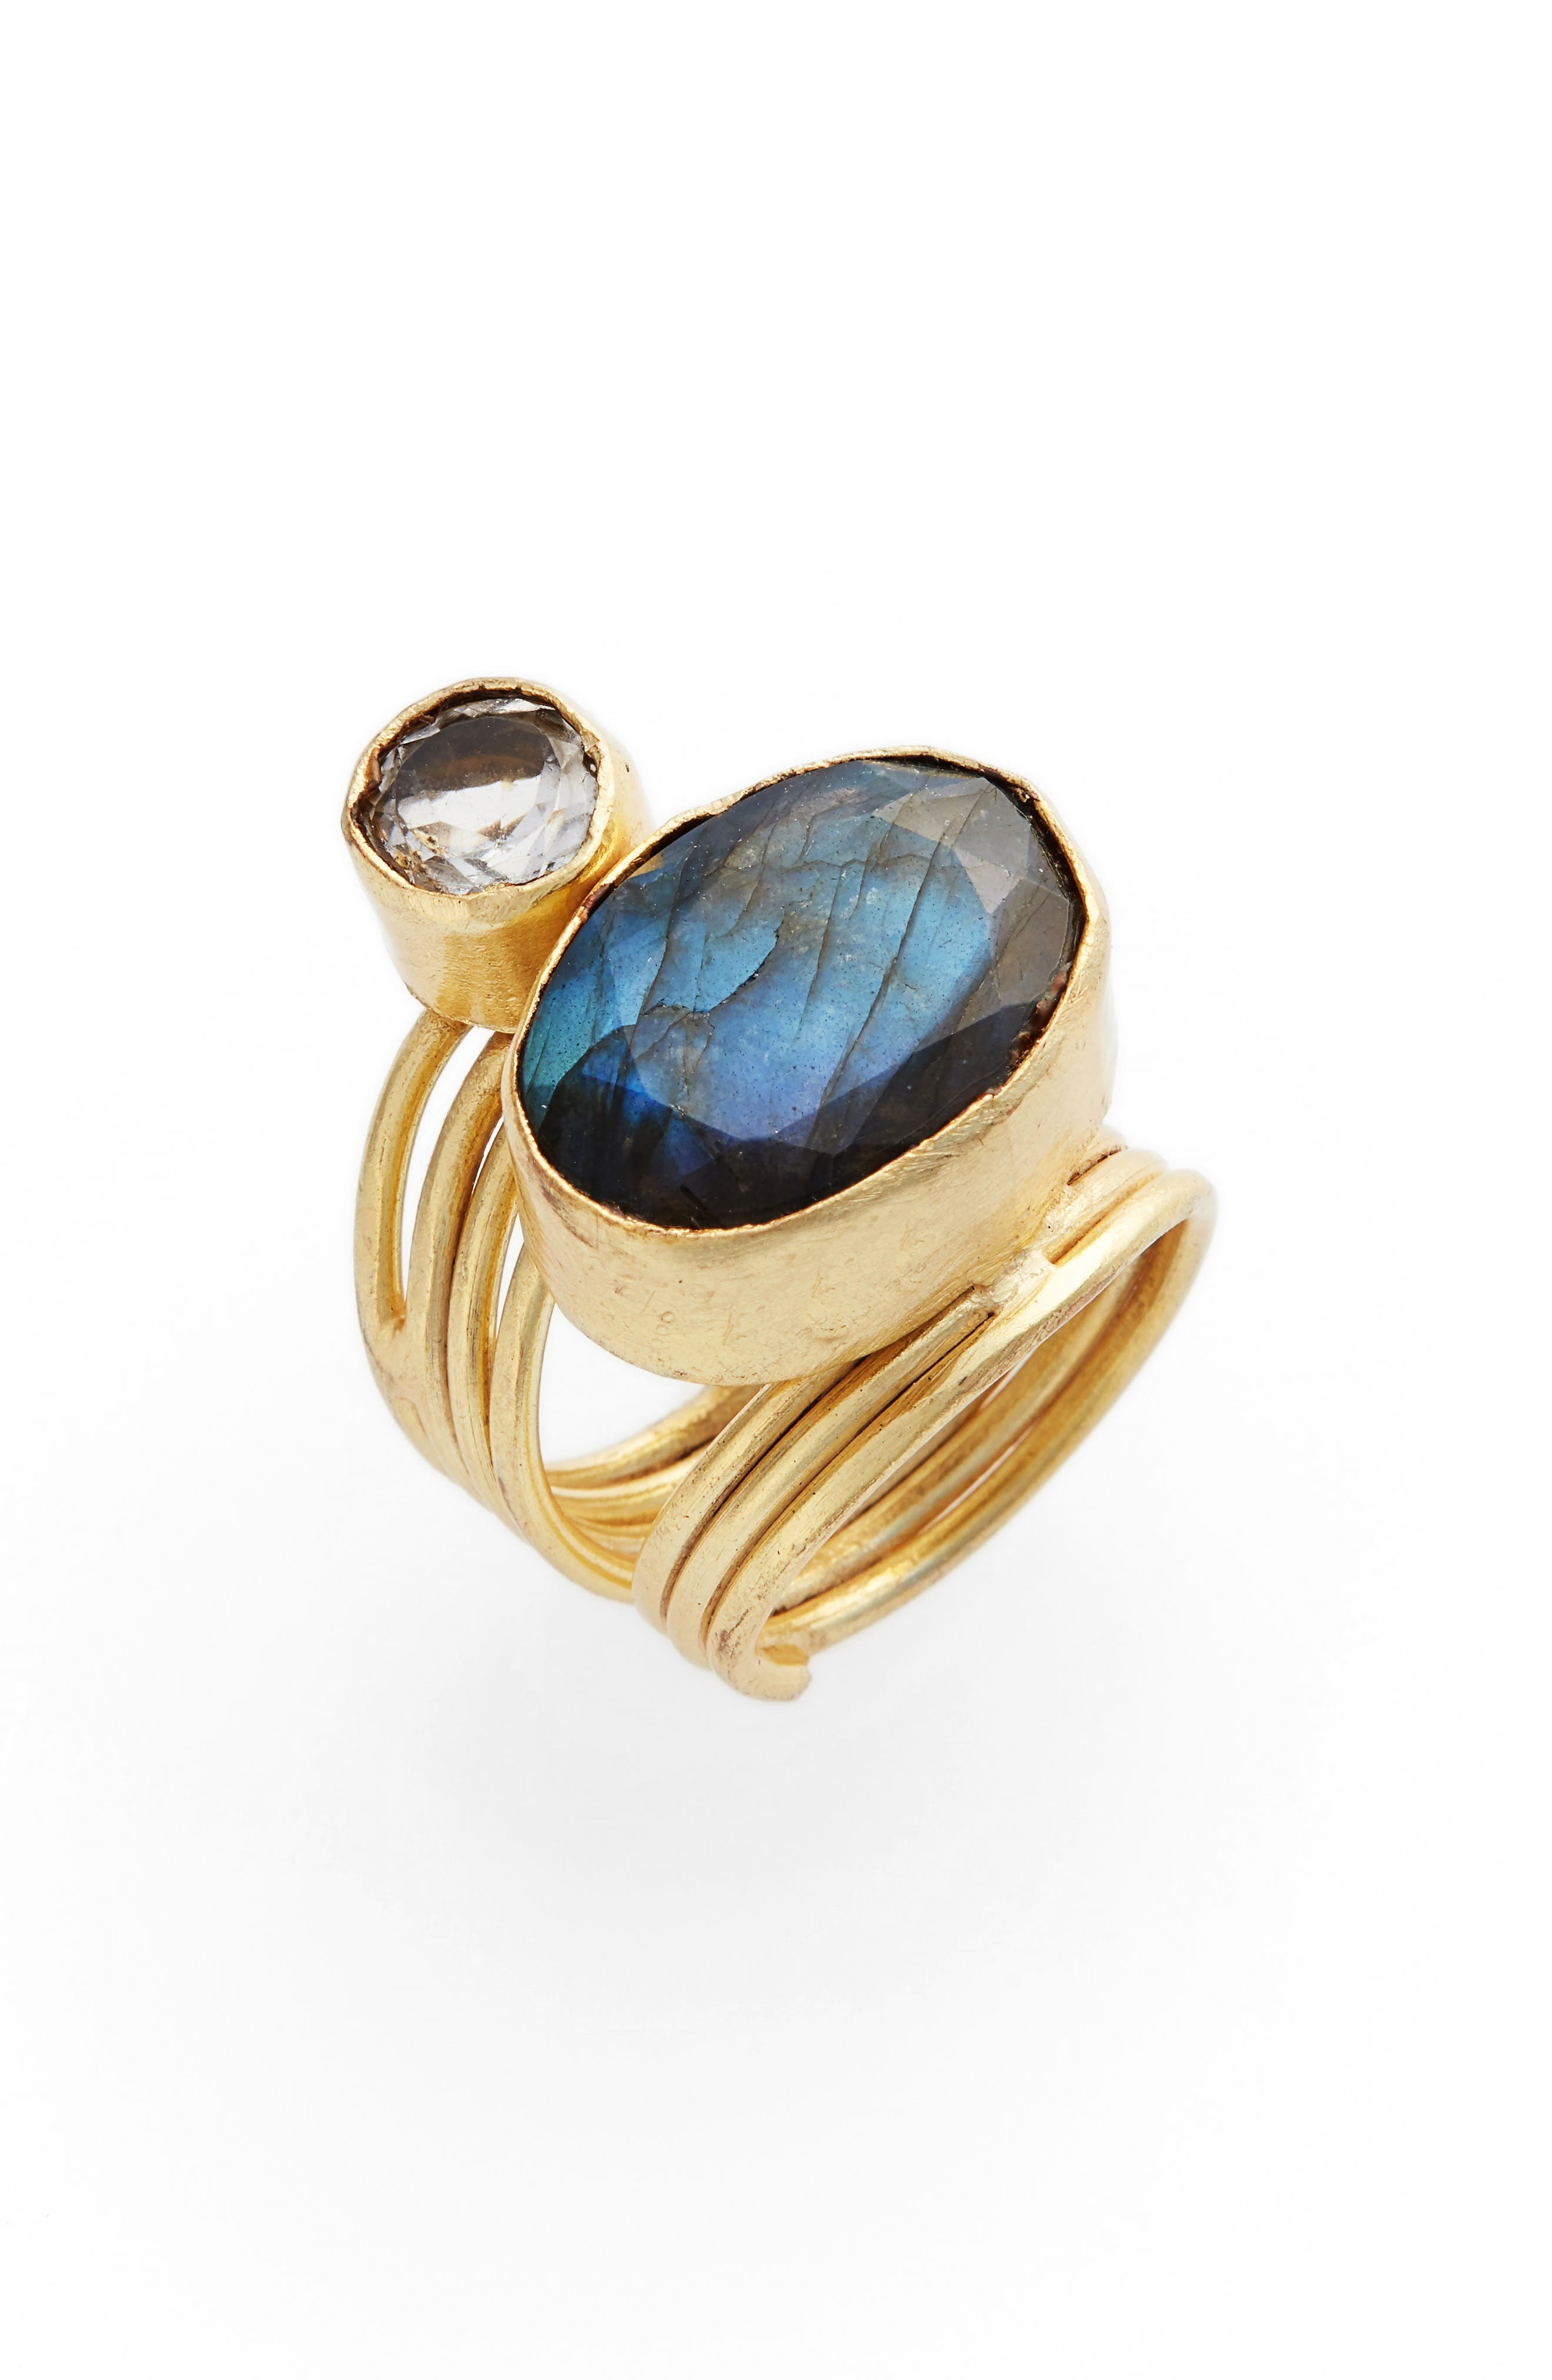 Luisa Labradorite & Crystal Ring,                             Main thumbnail 1, color,                             Gold/ Labradoriate